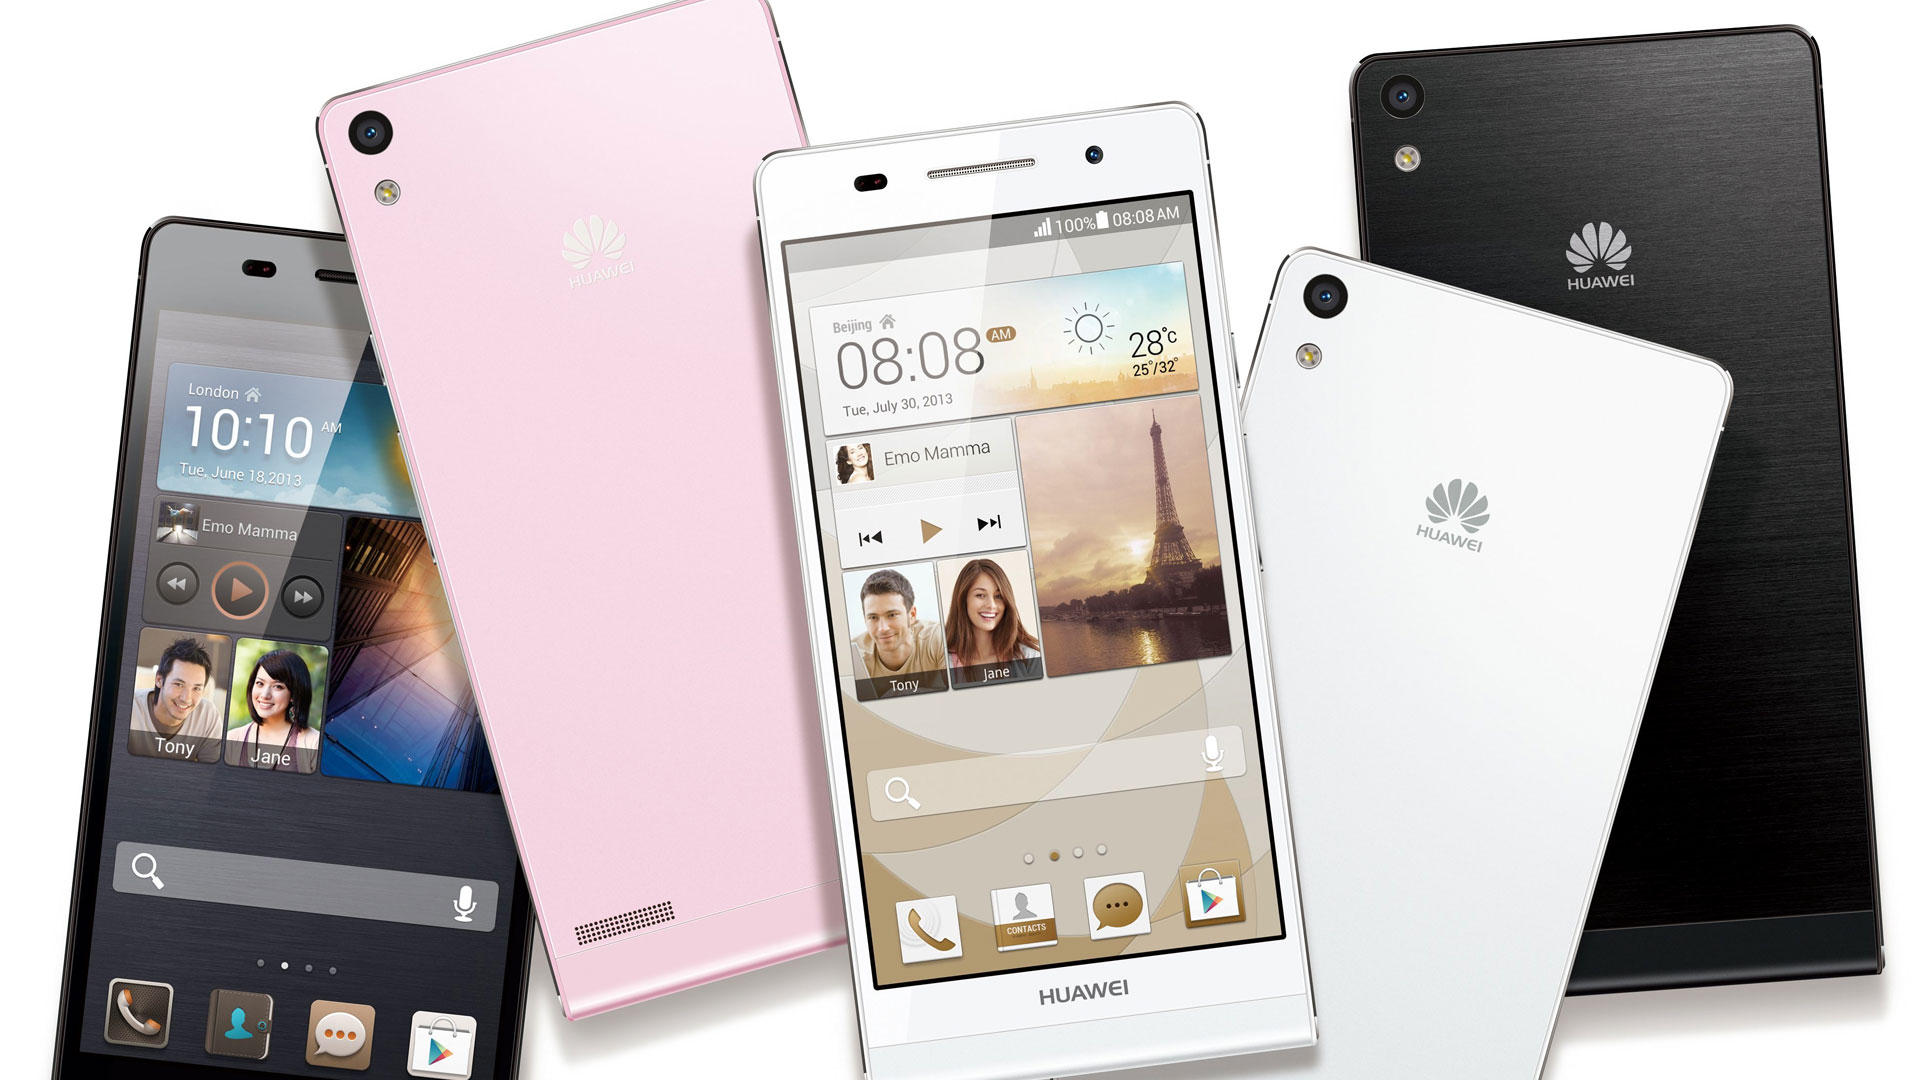 Huawei to Reveal Smartphones at Media Event in New York?